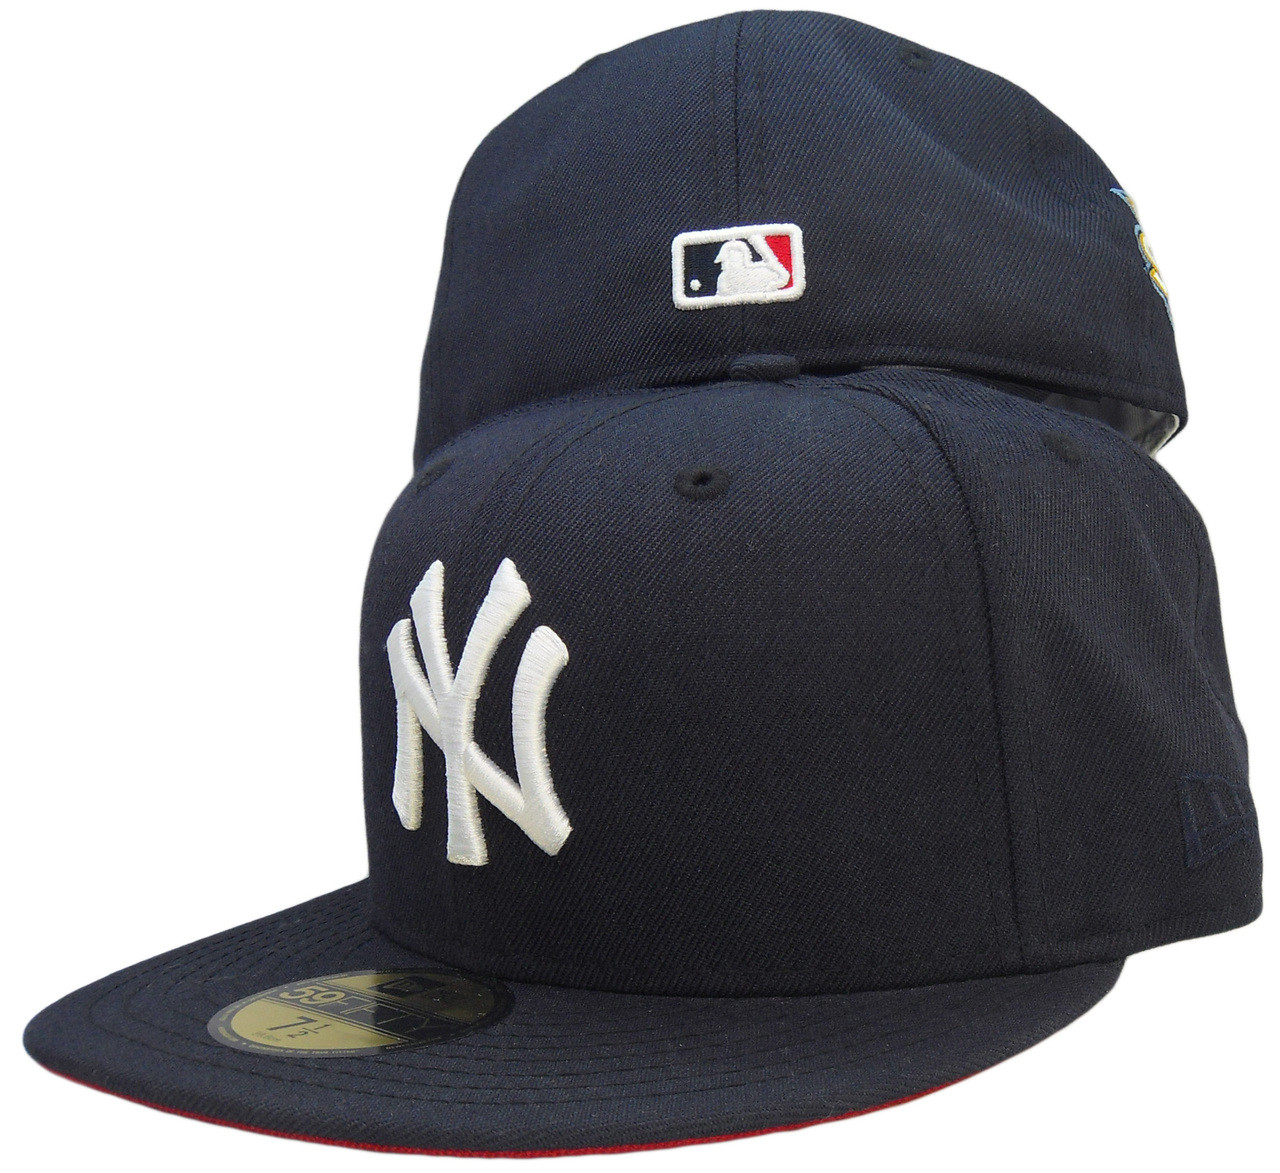 6f4dec61 New York Yankees New Era 59Fifty Fitted Hat - Navy Blue, White, Red